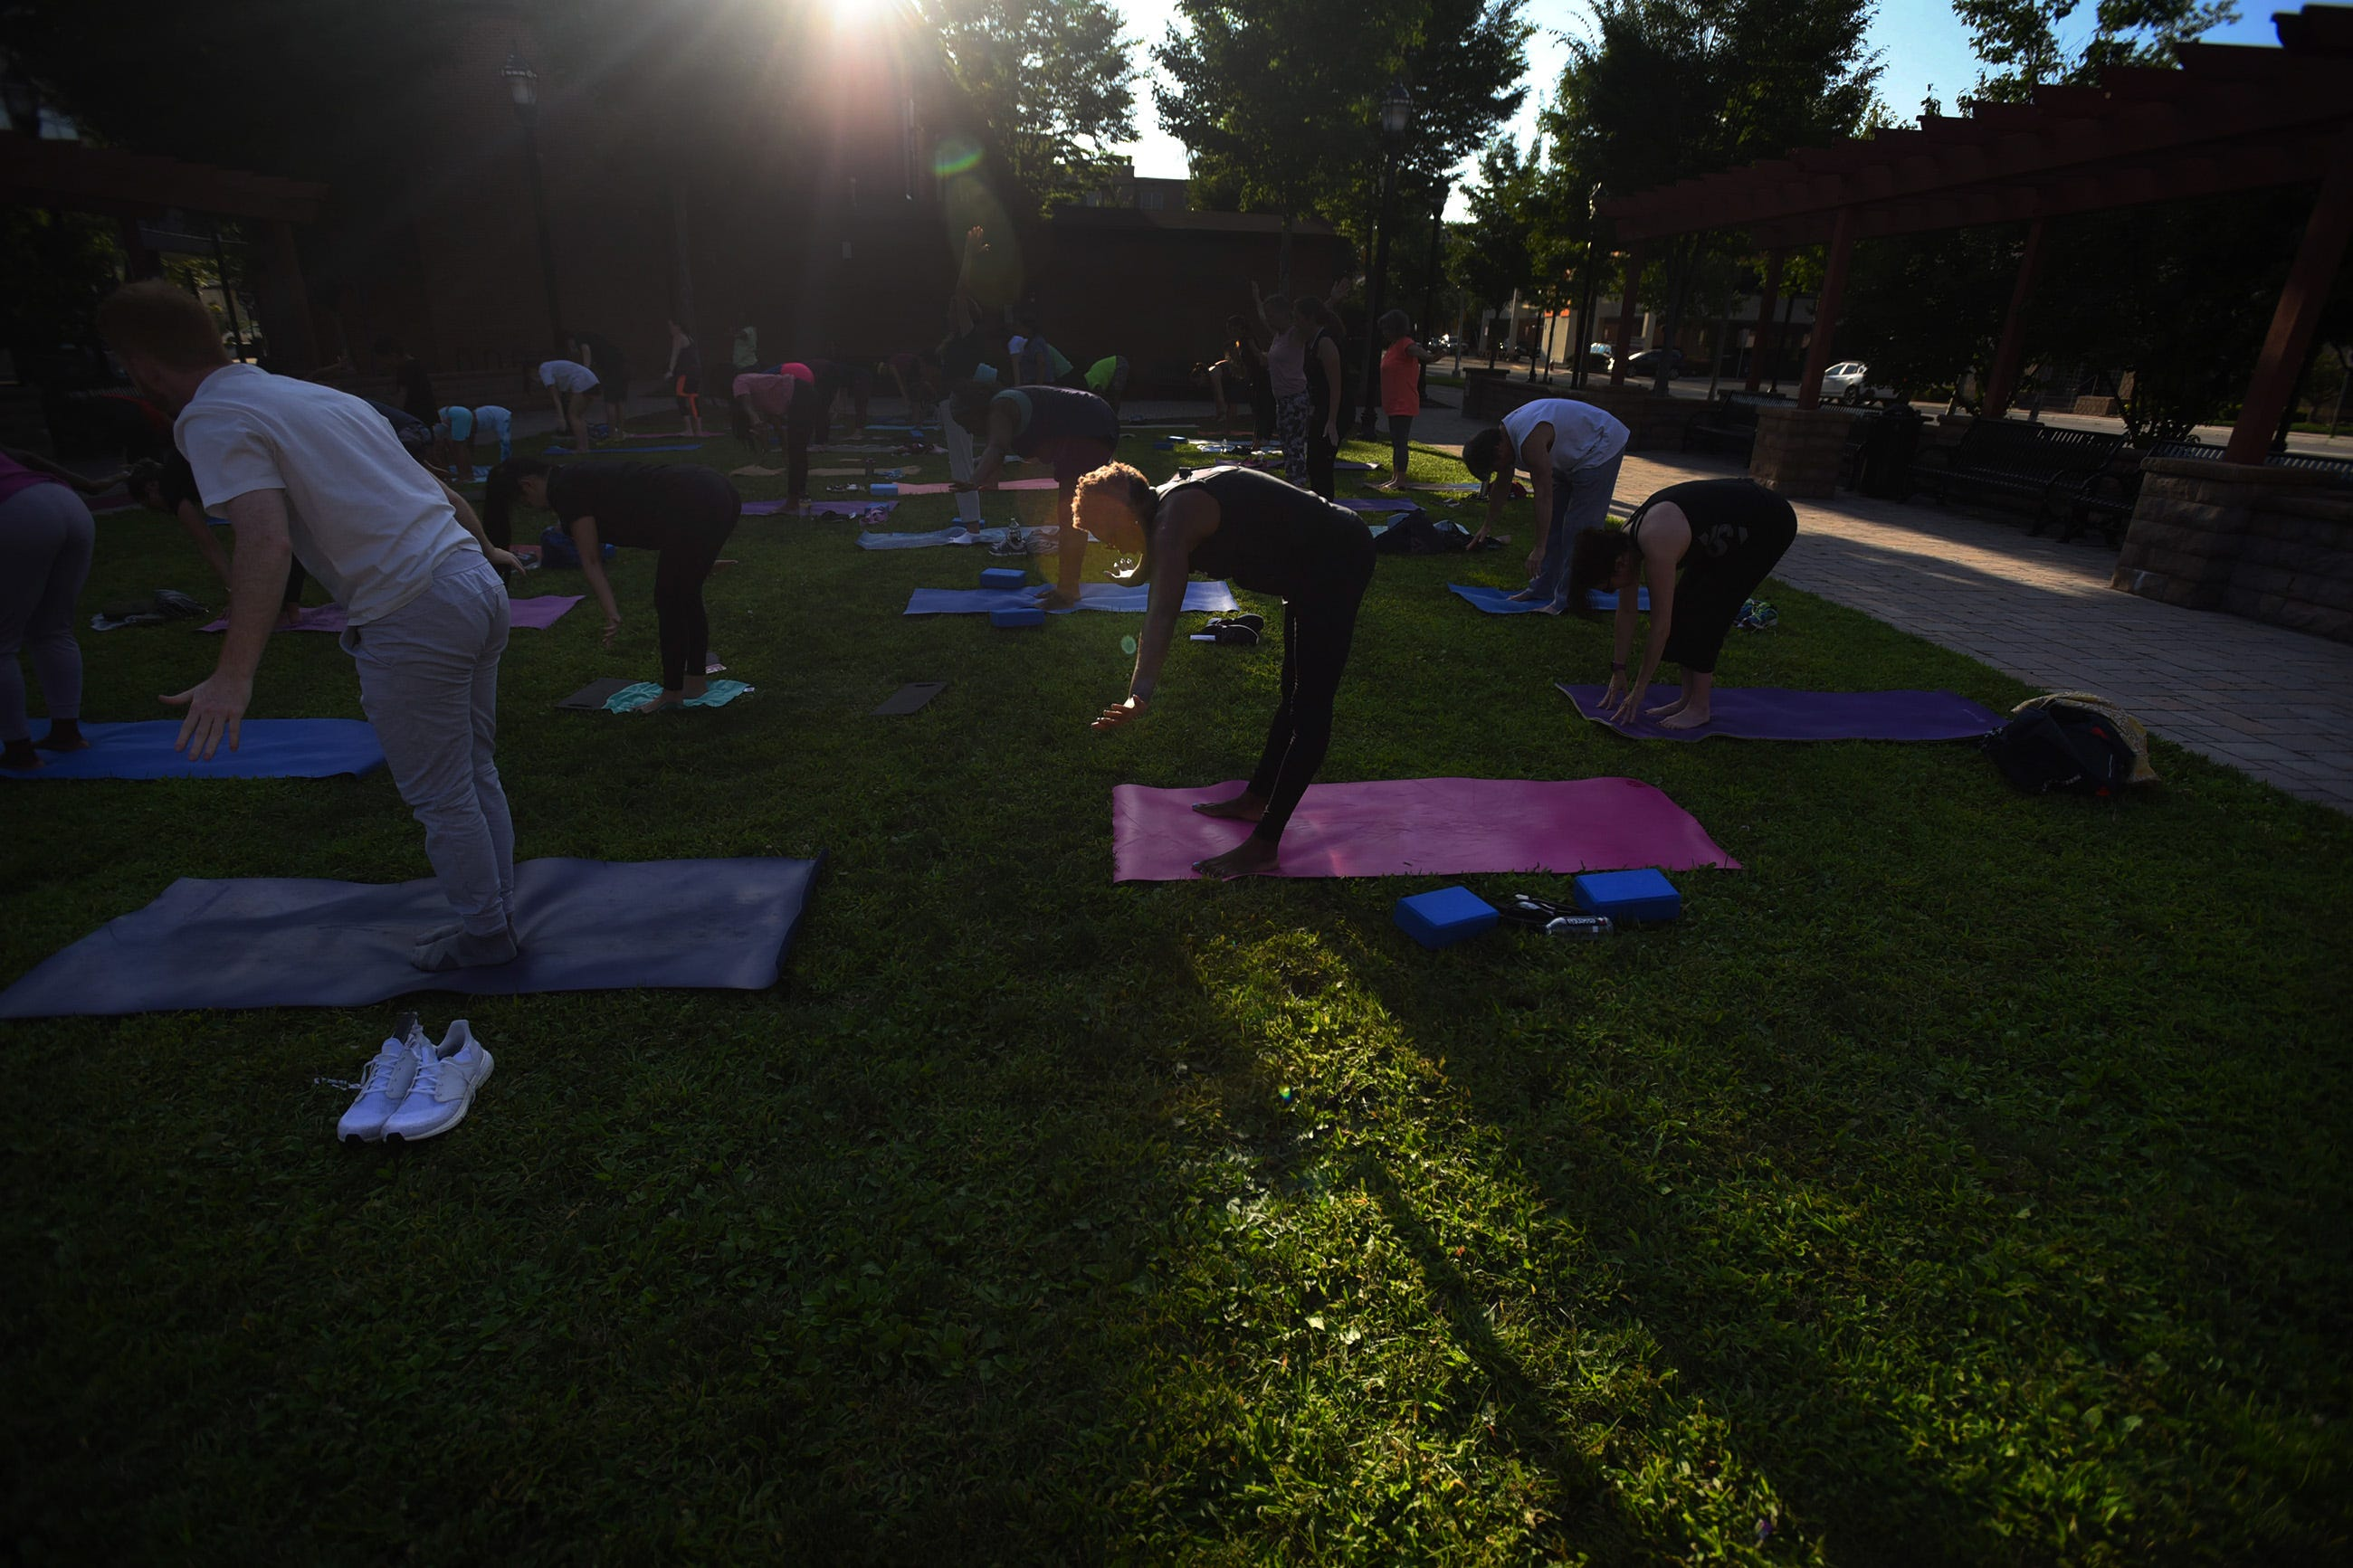 Hackensack resident Patricia Kinloch, 70, does sunset yoga in Atlantic Street Park just outside of the Hackensack Performing Arts Center on 08/02/21. It is one of many free-admission summer events hosted by HACPAC. Patricia has been doing Yoga for about 8 years.